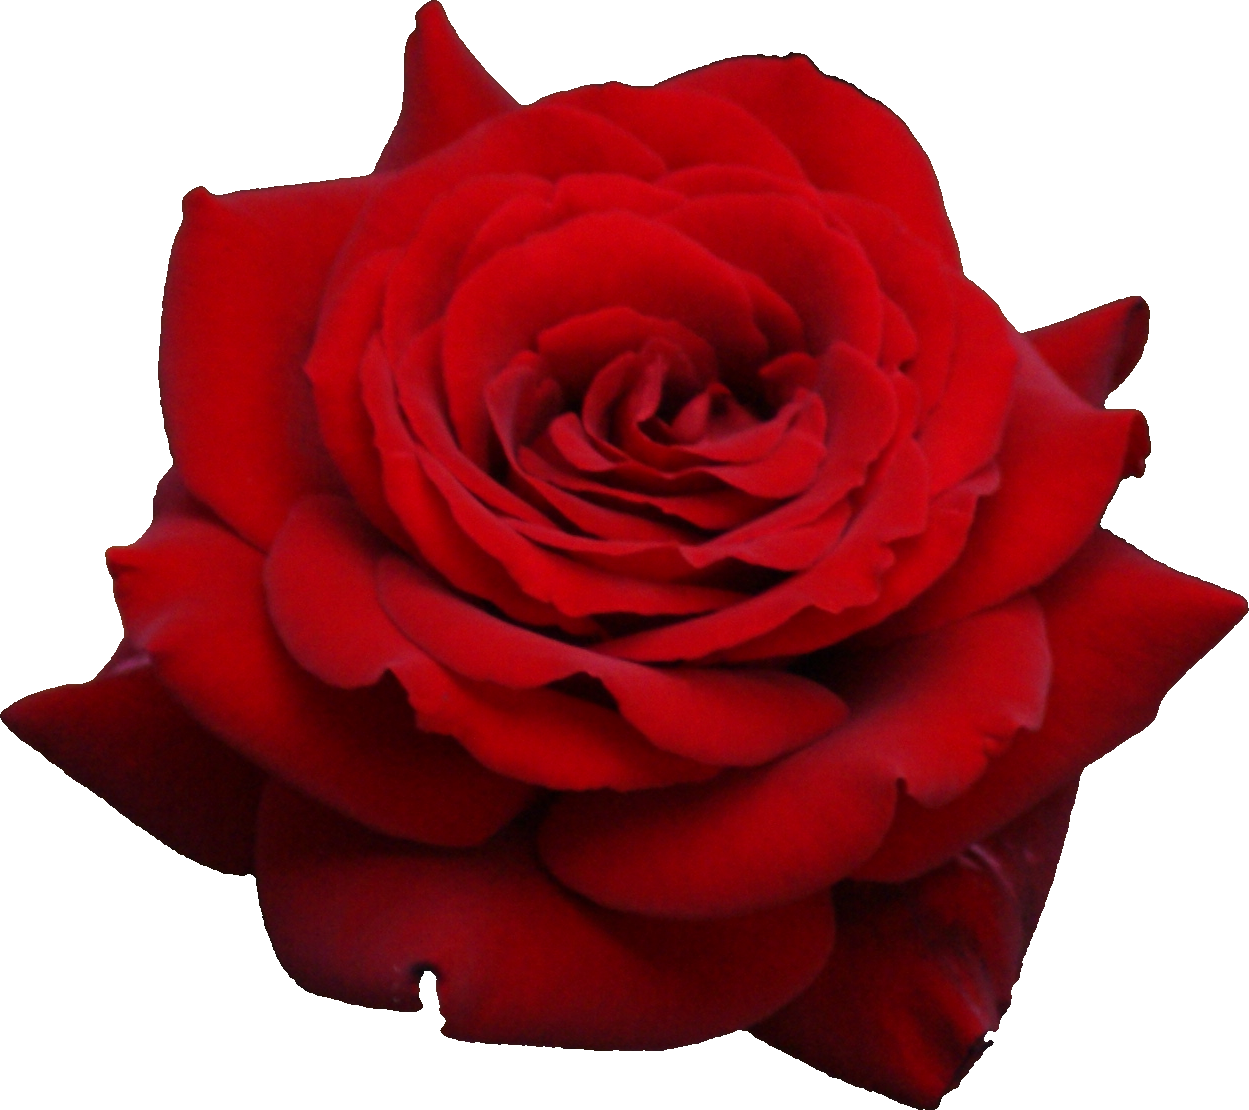 Rose Png Flower Images Free Download Red Rose Png Rose Flower Png Flower Png Images